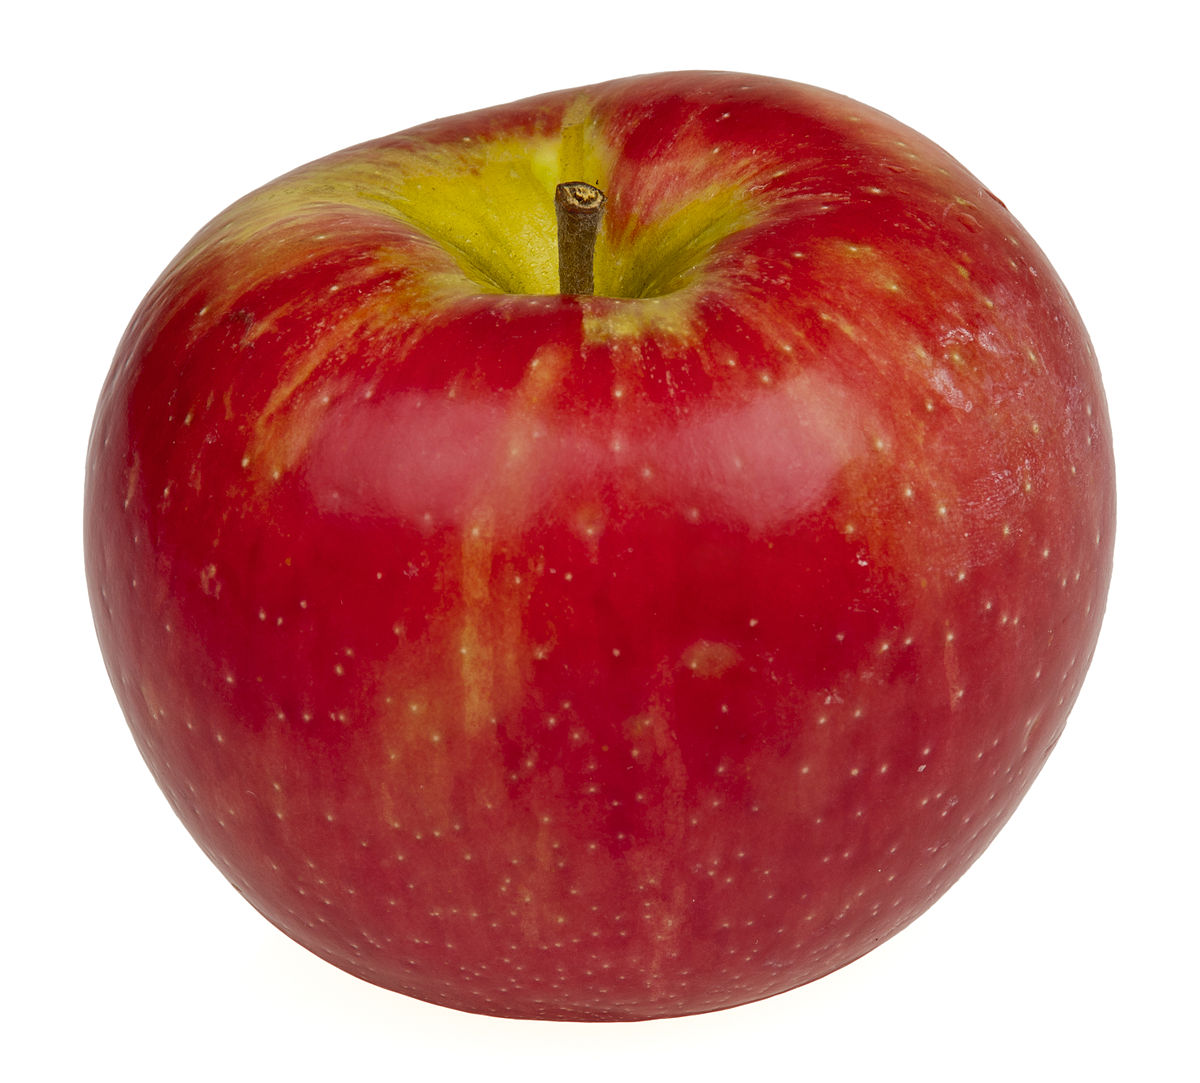 1200px-Honeycrisp-Apple.jpg